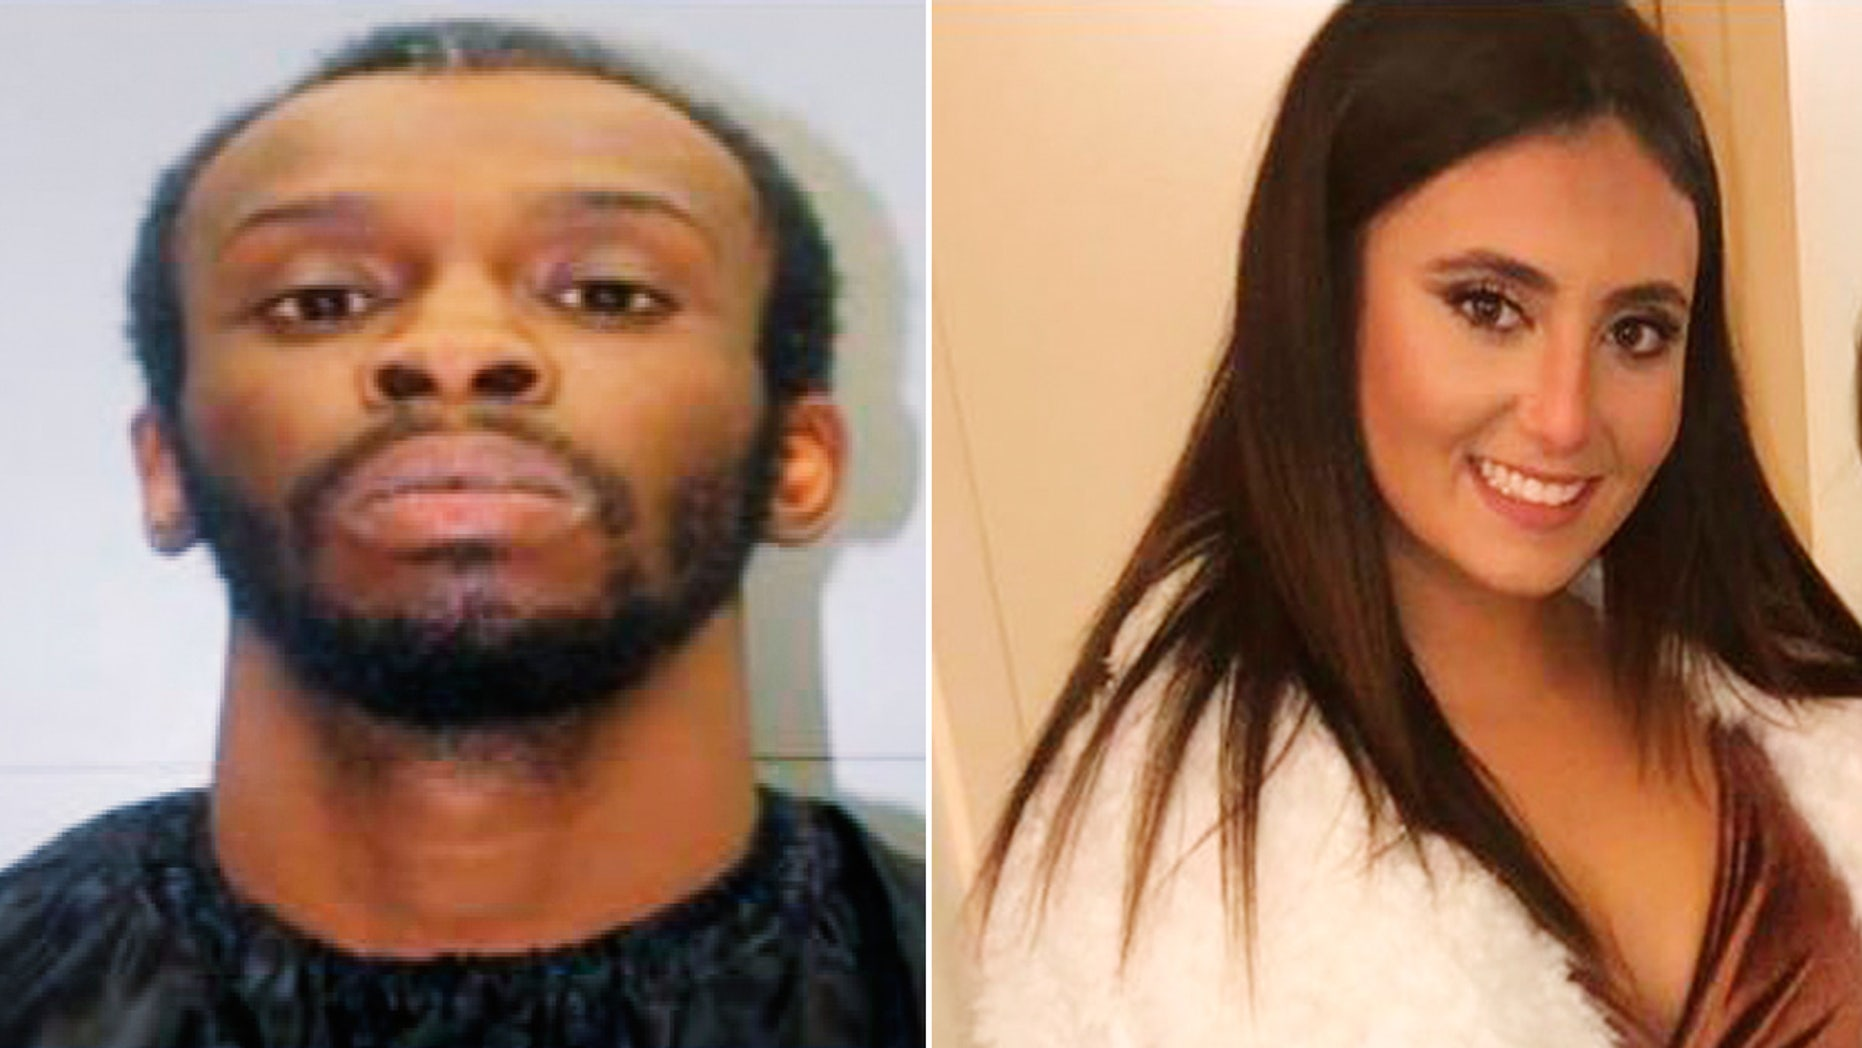 Columbia Police Department announced Saturday that authorities had charged 24-year-old Nathaniel Rowland with the killing of Samantha Josephson, 21, after a traffic stop revealed that victim's blood was located in his vehicle.